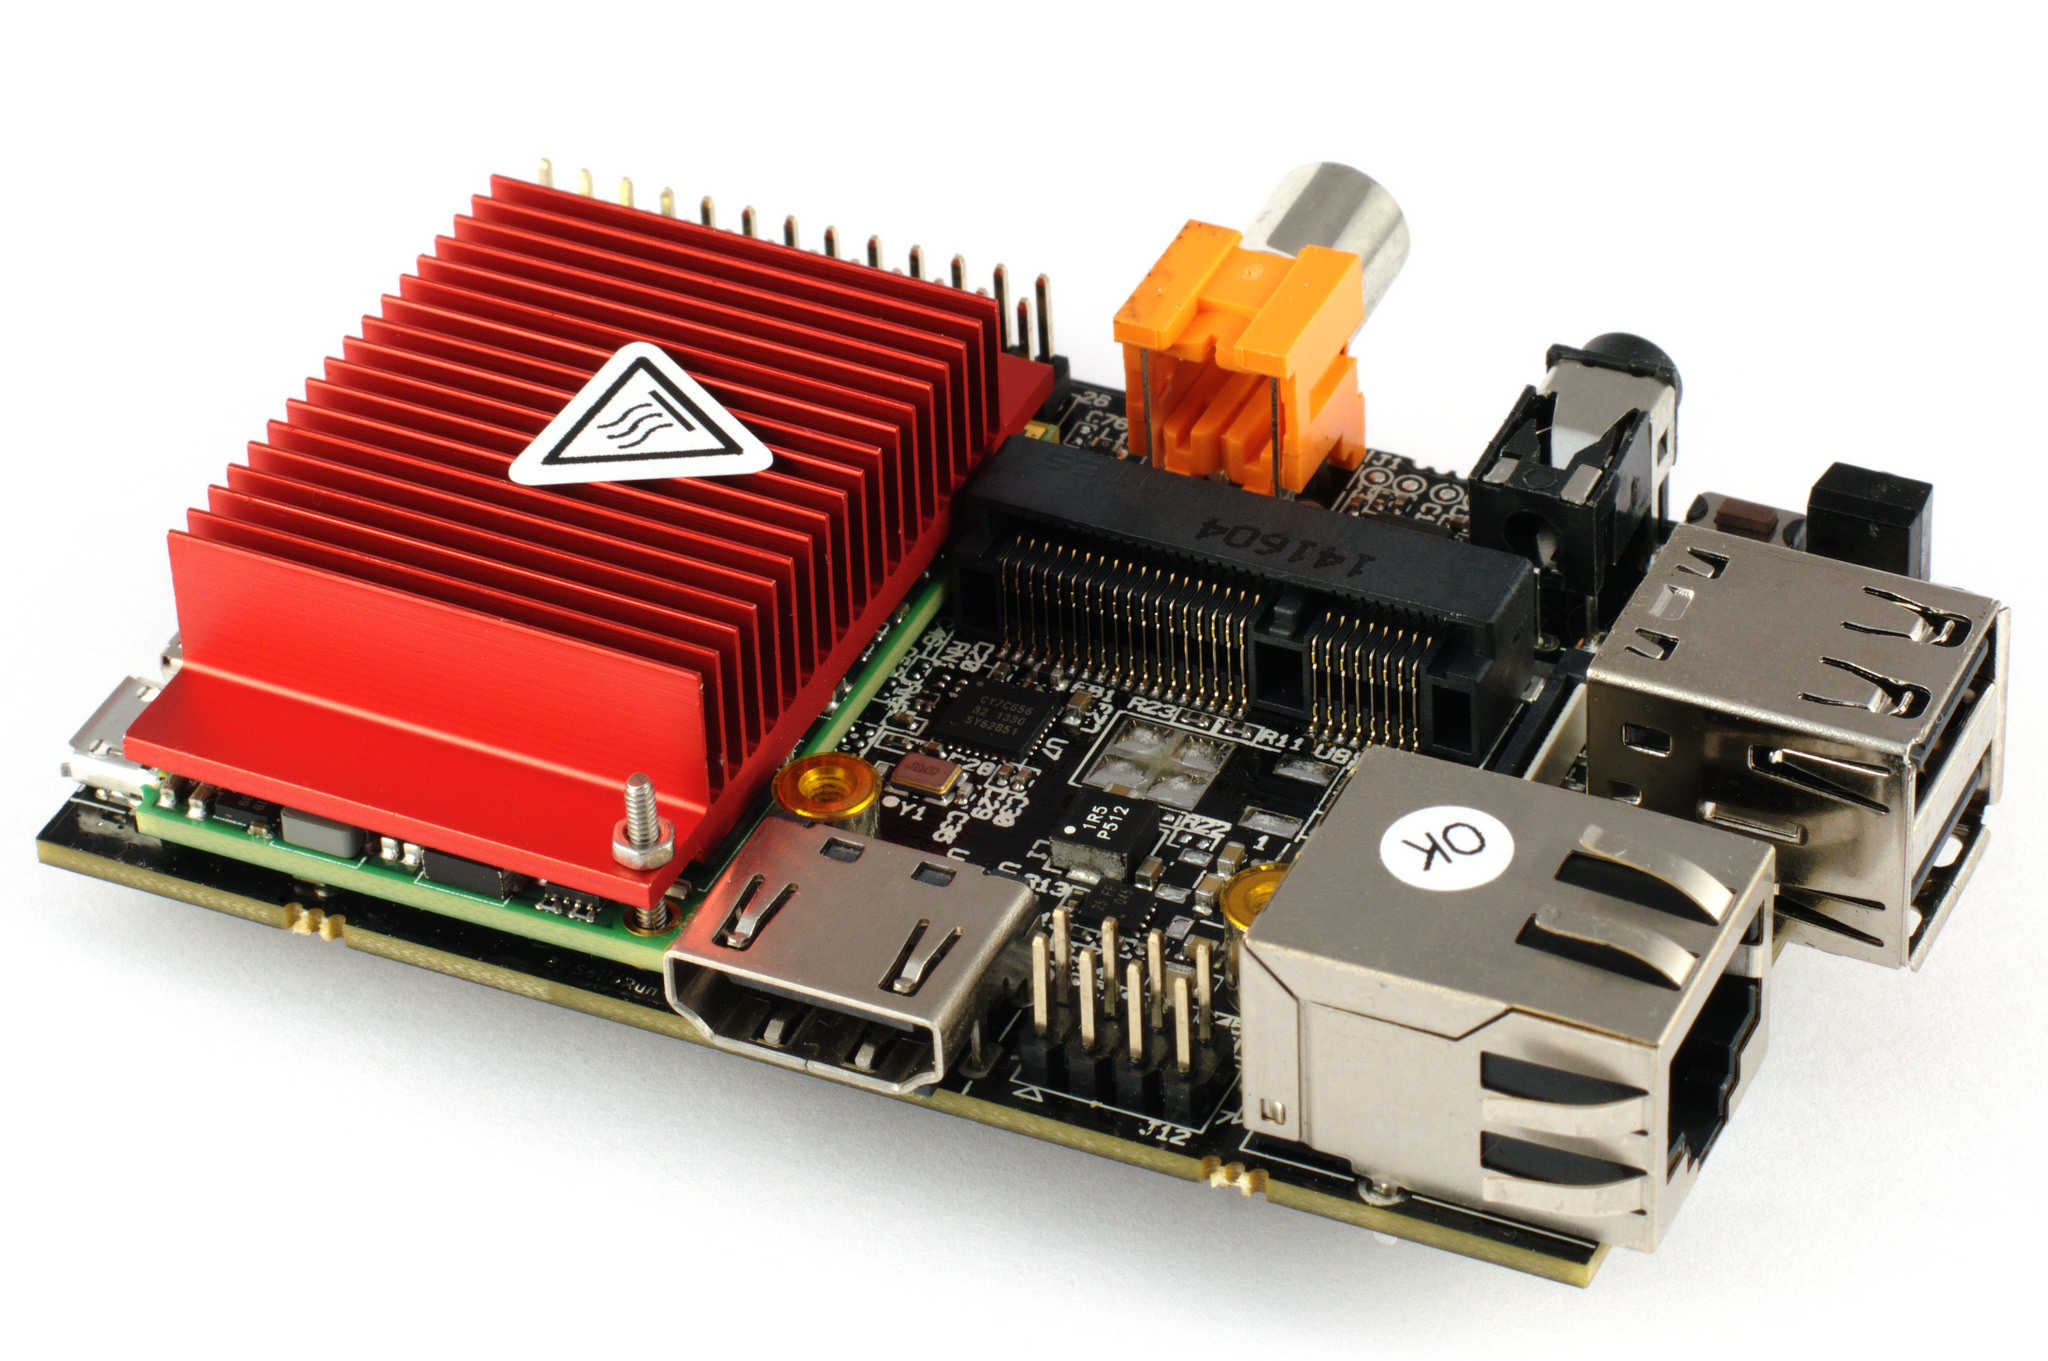 Getting Started With Node.js on the Hummingboard, a Raspberry Pi Clone